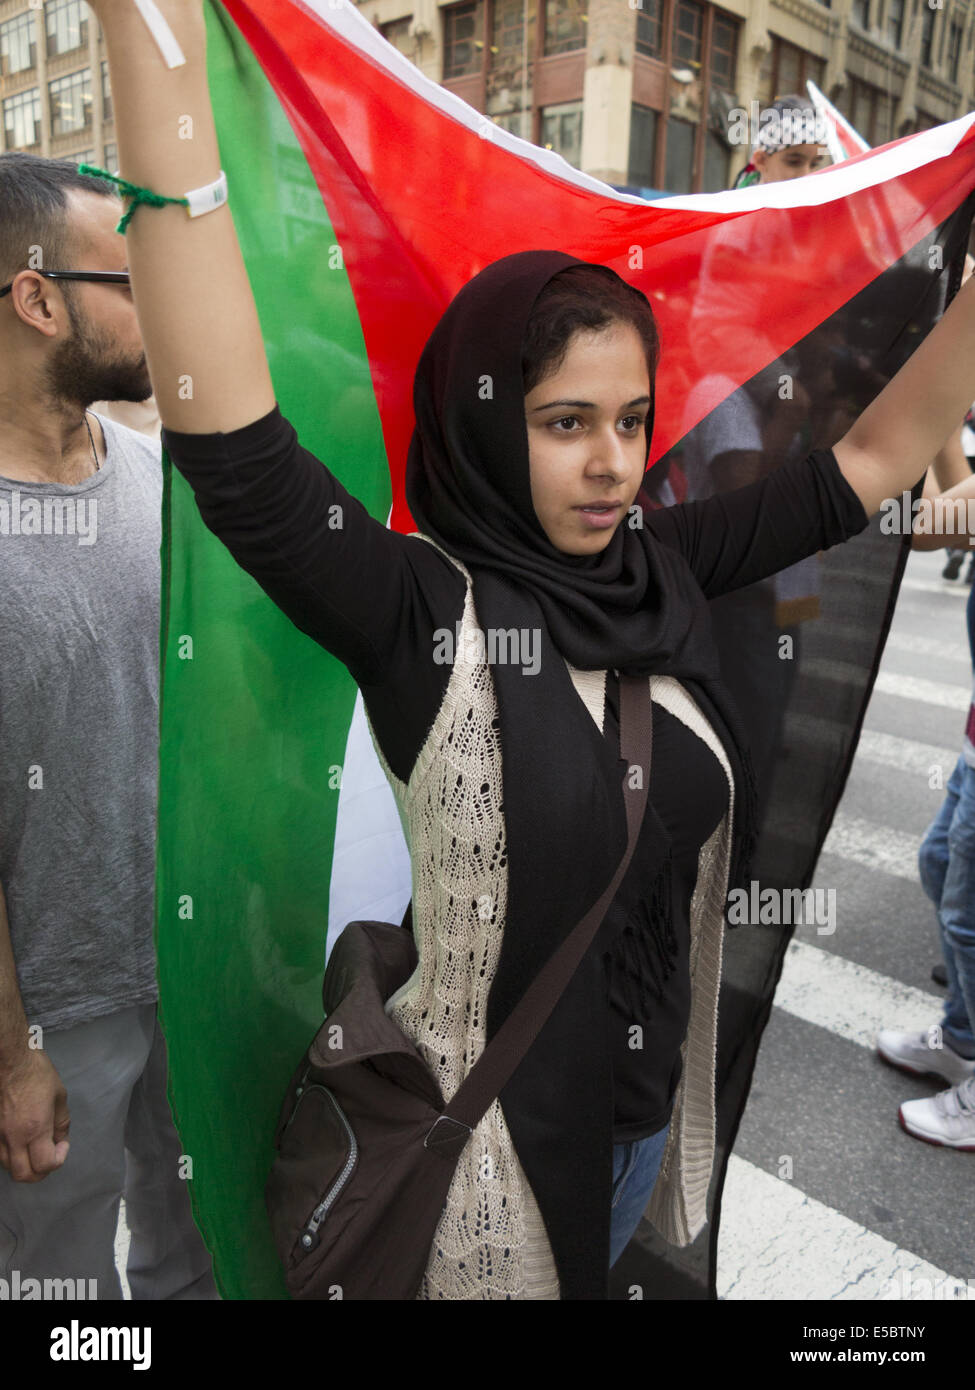 USA: NYC, NY. Pro-Palestinian demonstration at Times Square protesting Israeli attacks against Gaza, July 25, 2014. Stock Photo